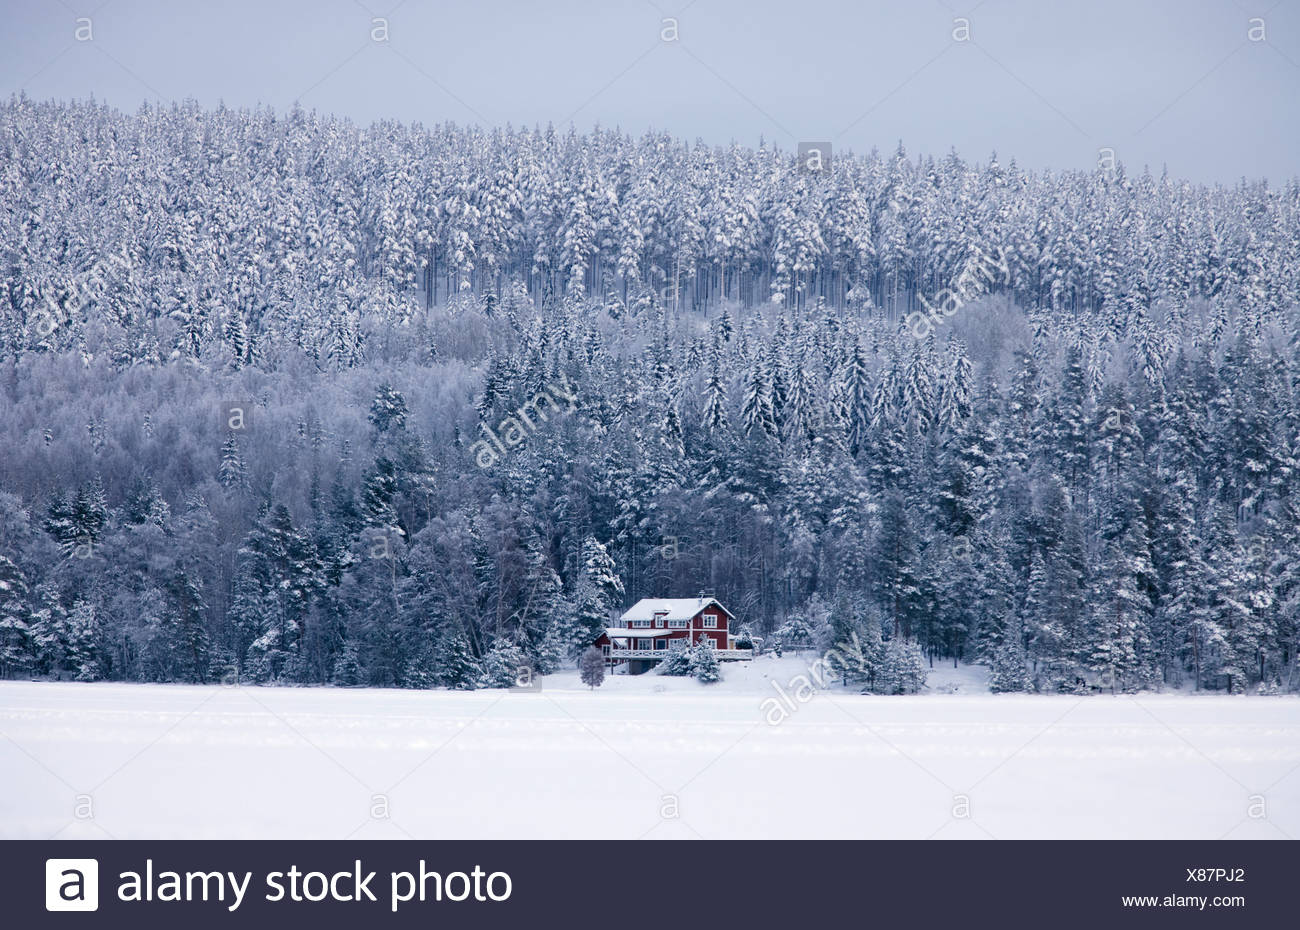 Snow covered forest and house in winter - Stock Image